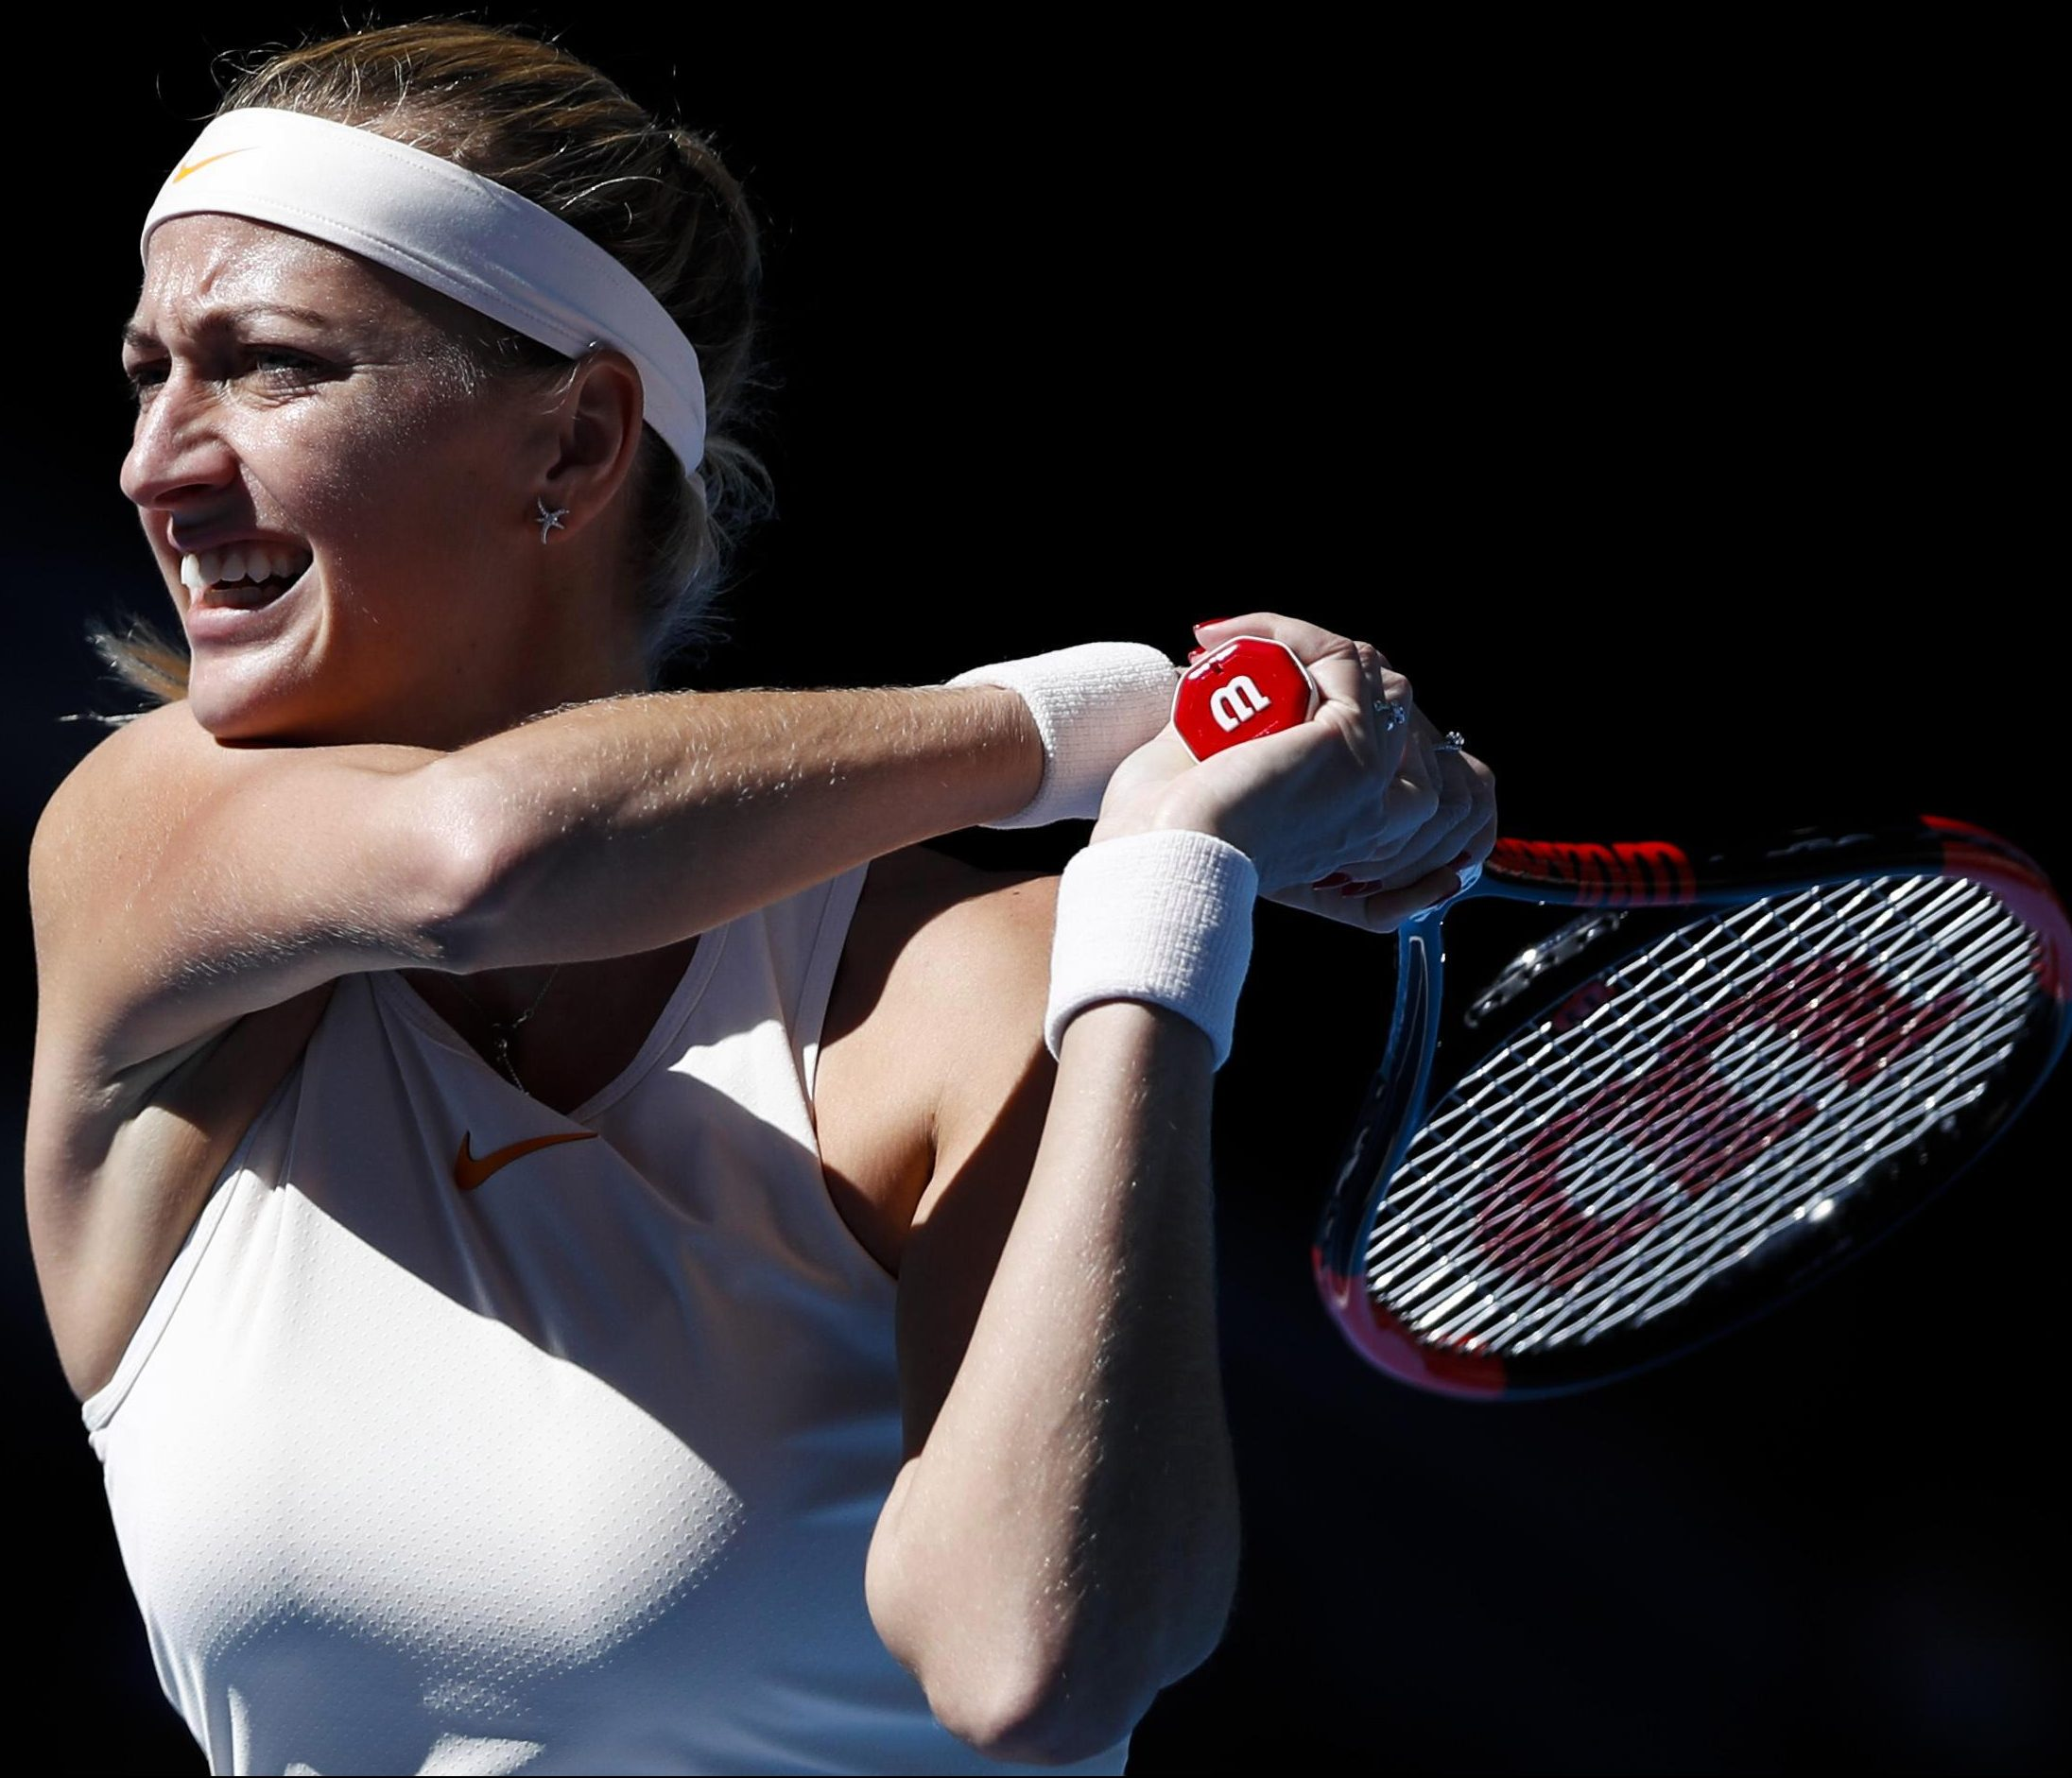 Petra has 25 career titles and is one of the world's richest tennis players